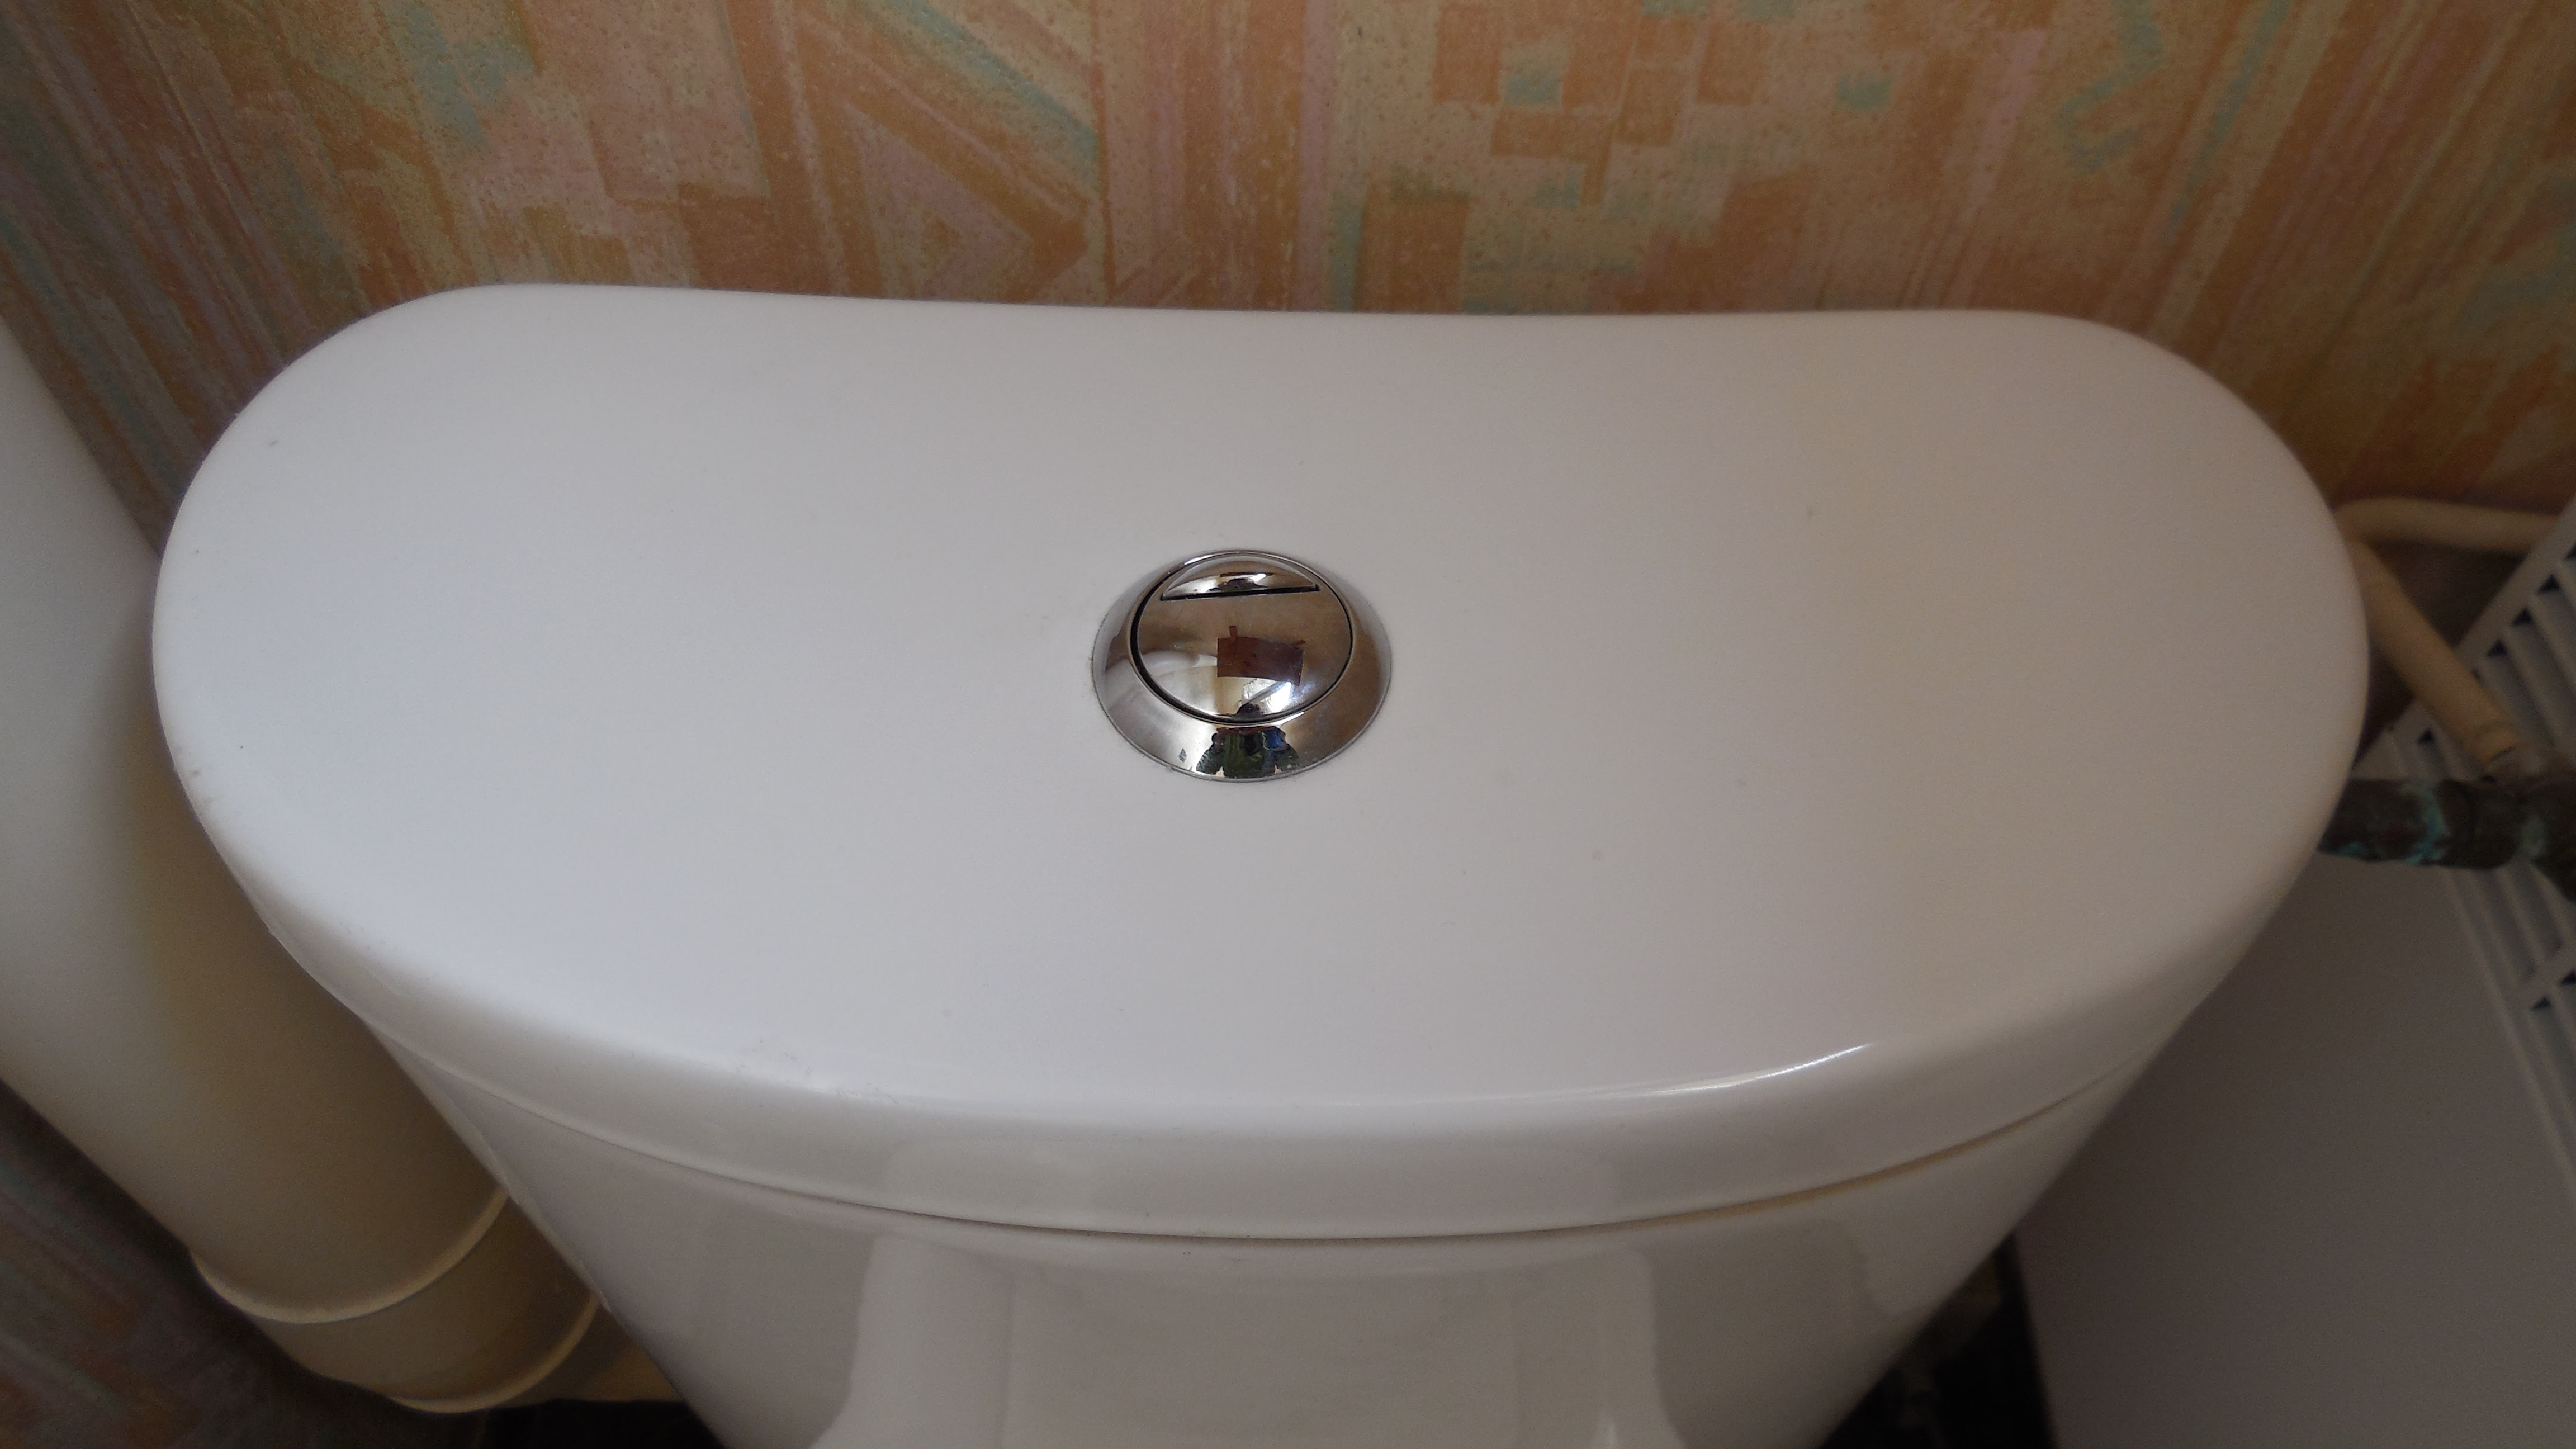 Where can I European style flush toilets in the US